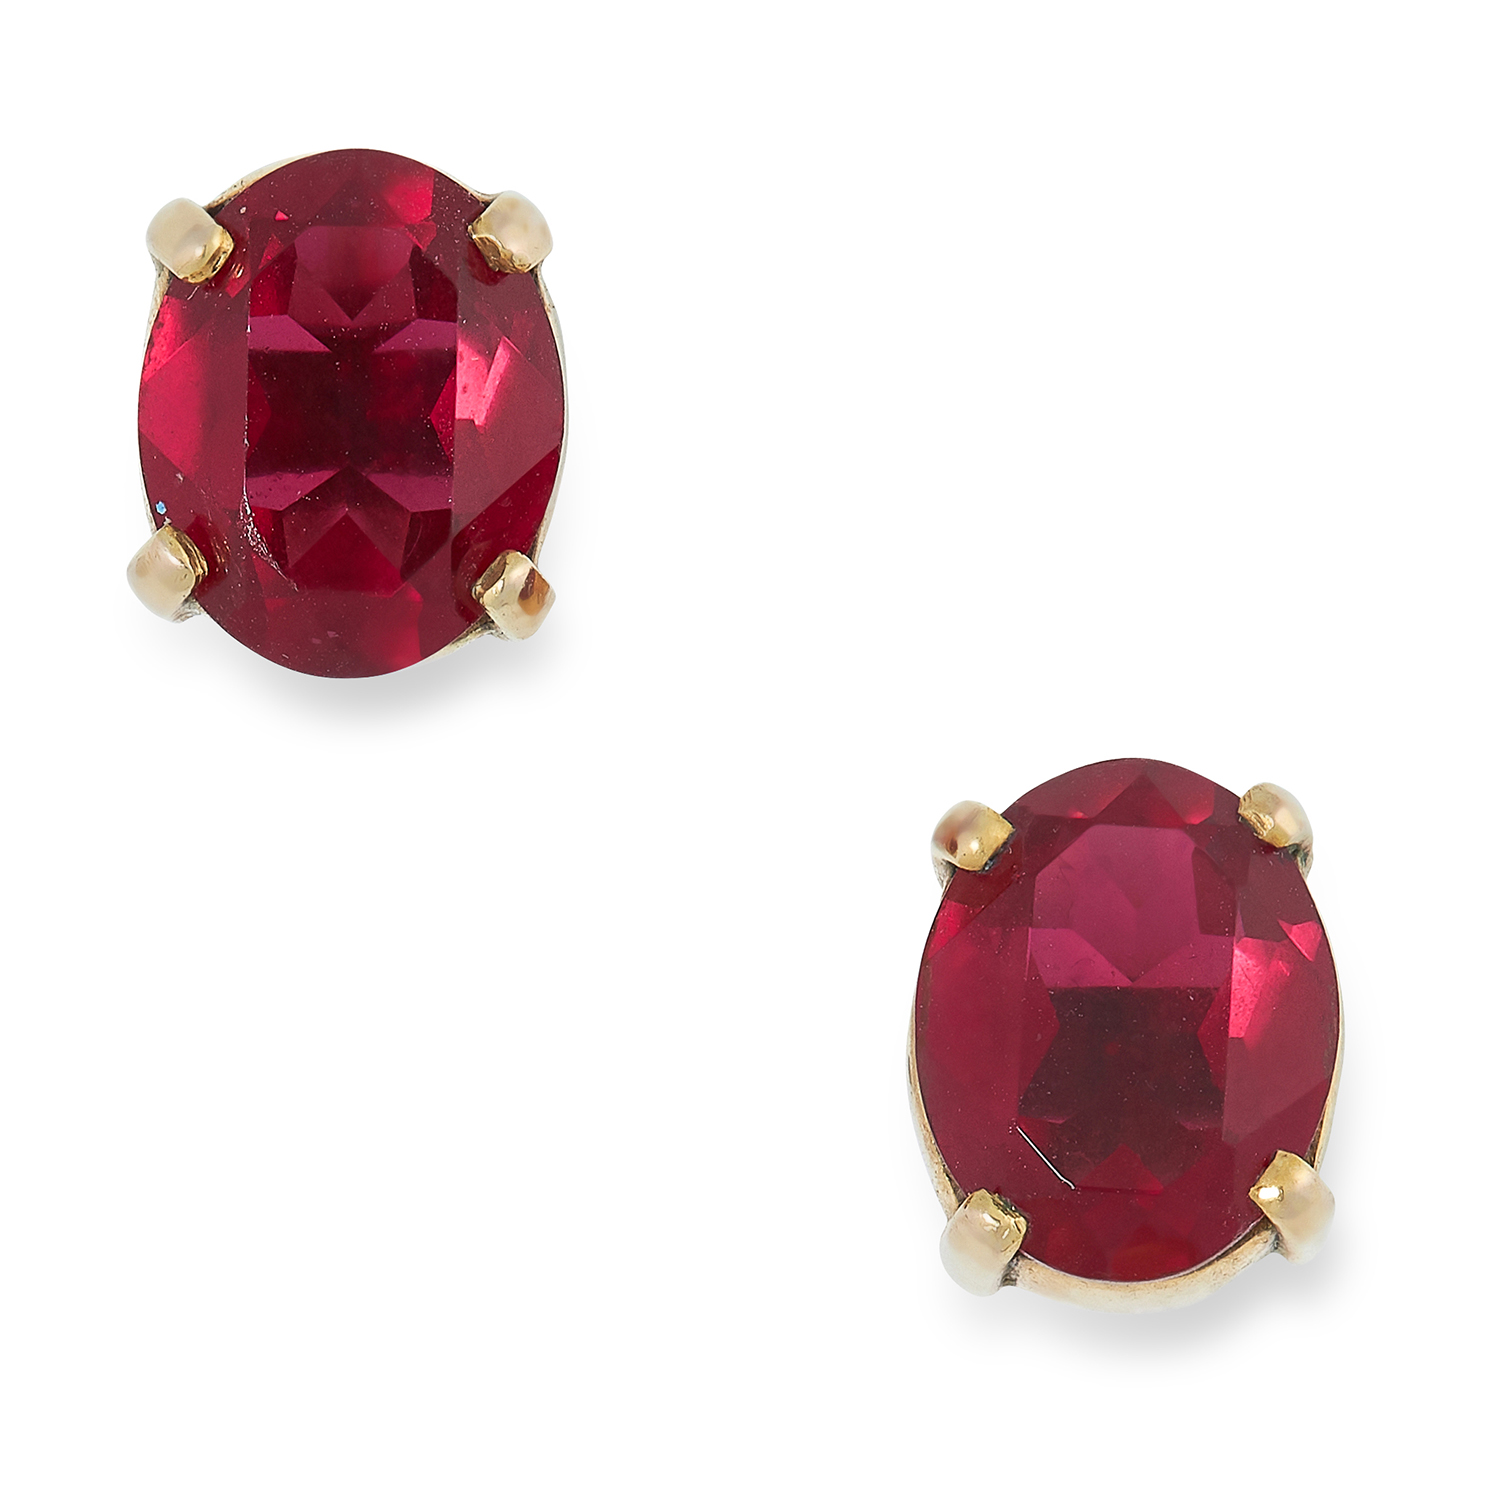 RED CRYSTAL STUD EARRINGS set with an oval faceted red crystal, 0.9cm, 3.5g.